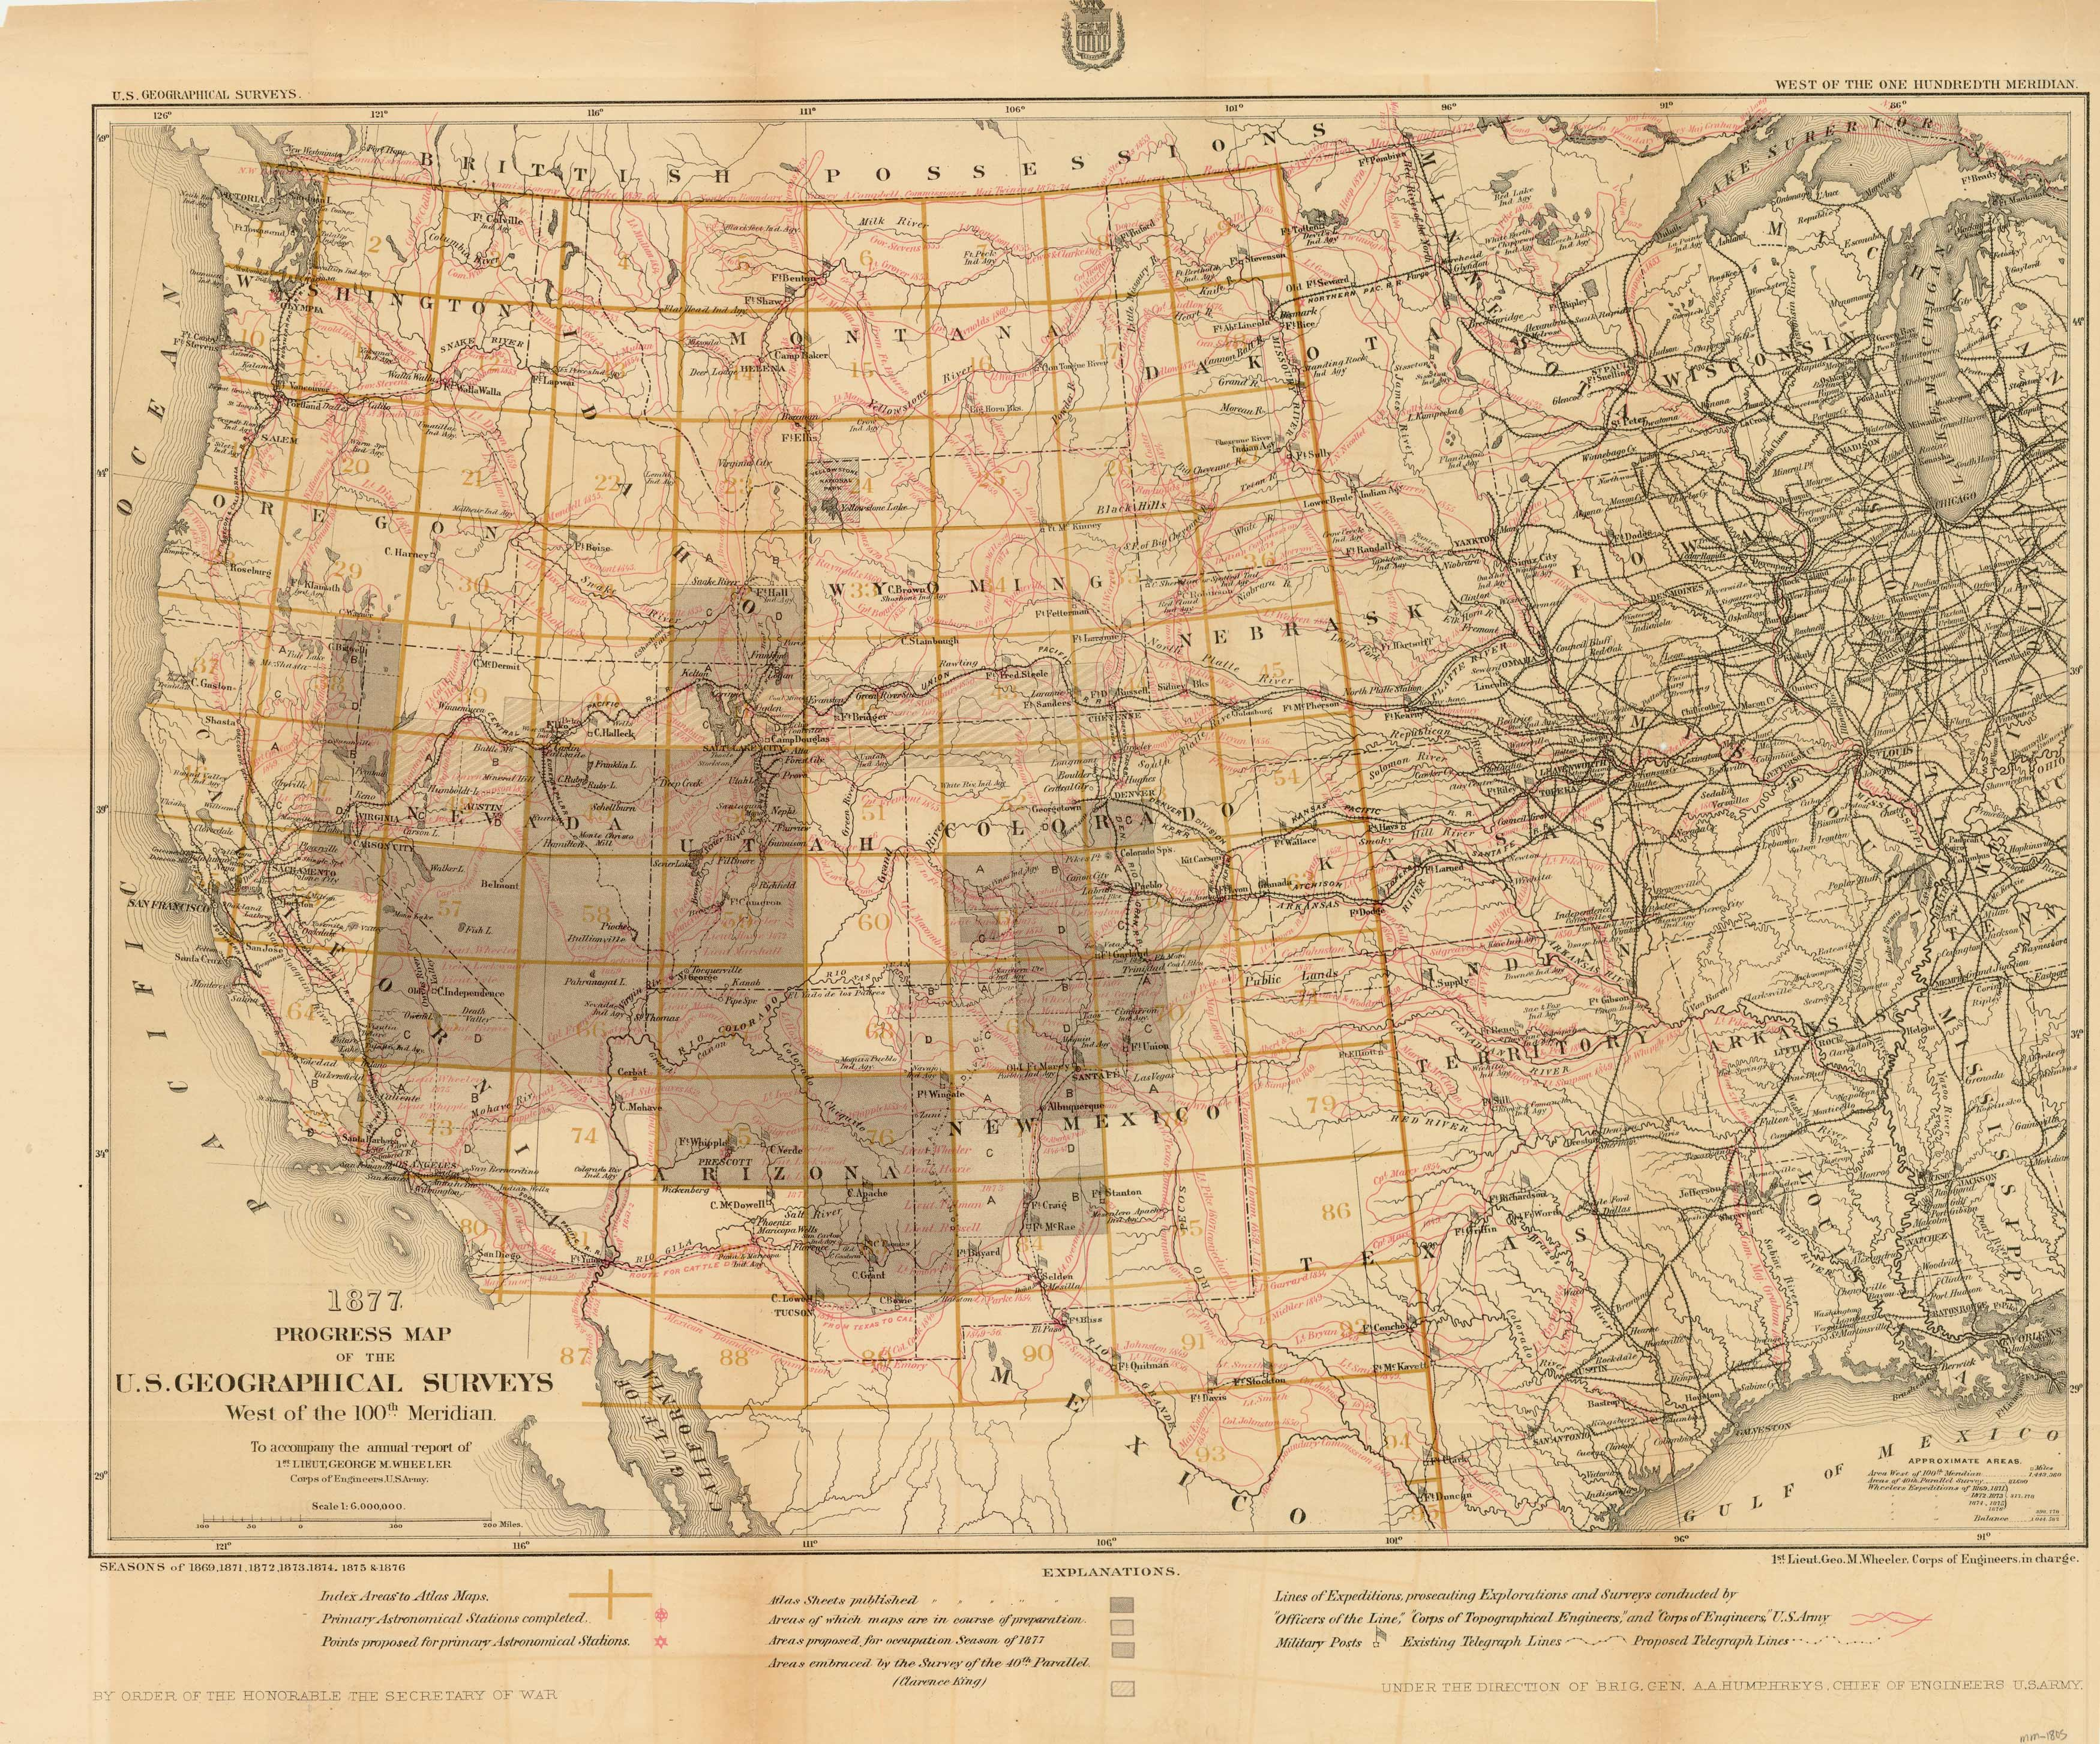 1877 Progress Map of the U.S. Geographical Surveys West of the 100th Meridian